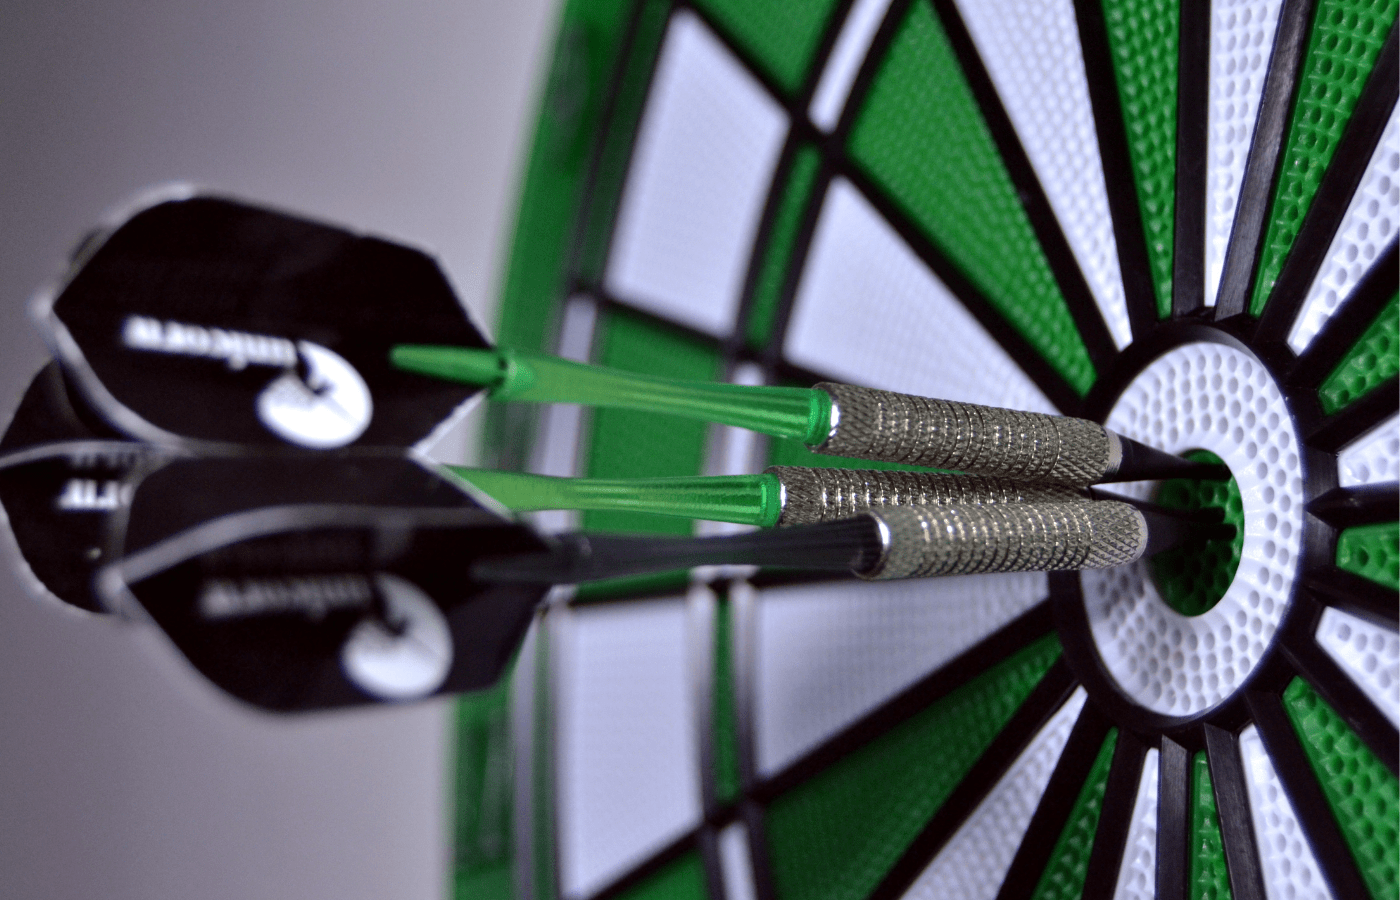 how to remove broken dart tips from electronic dartboard